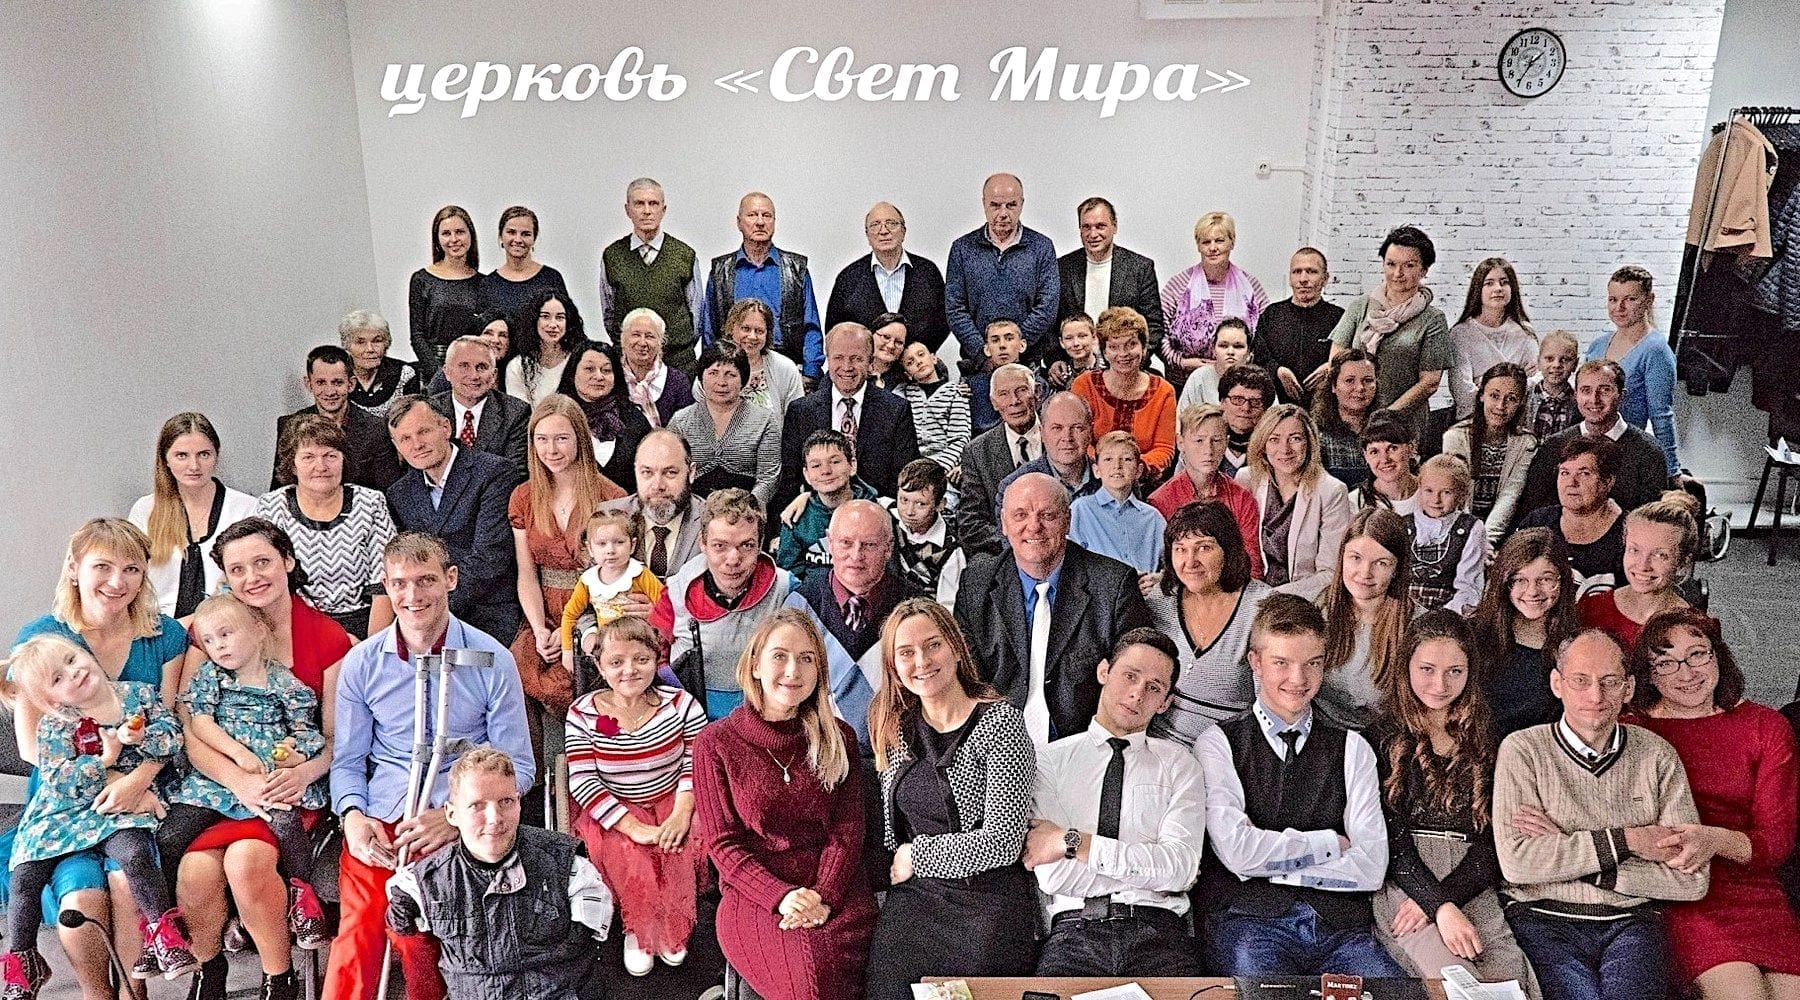 Baptists in Belarus Spread Gospel Despite Obstacles